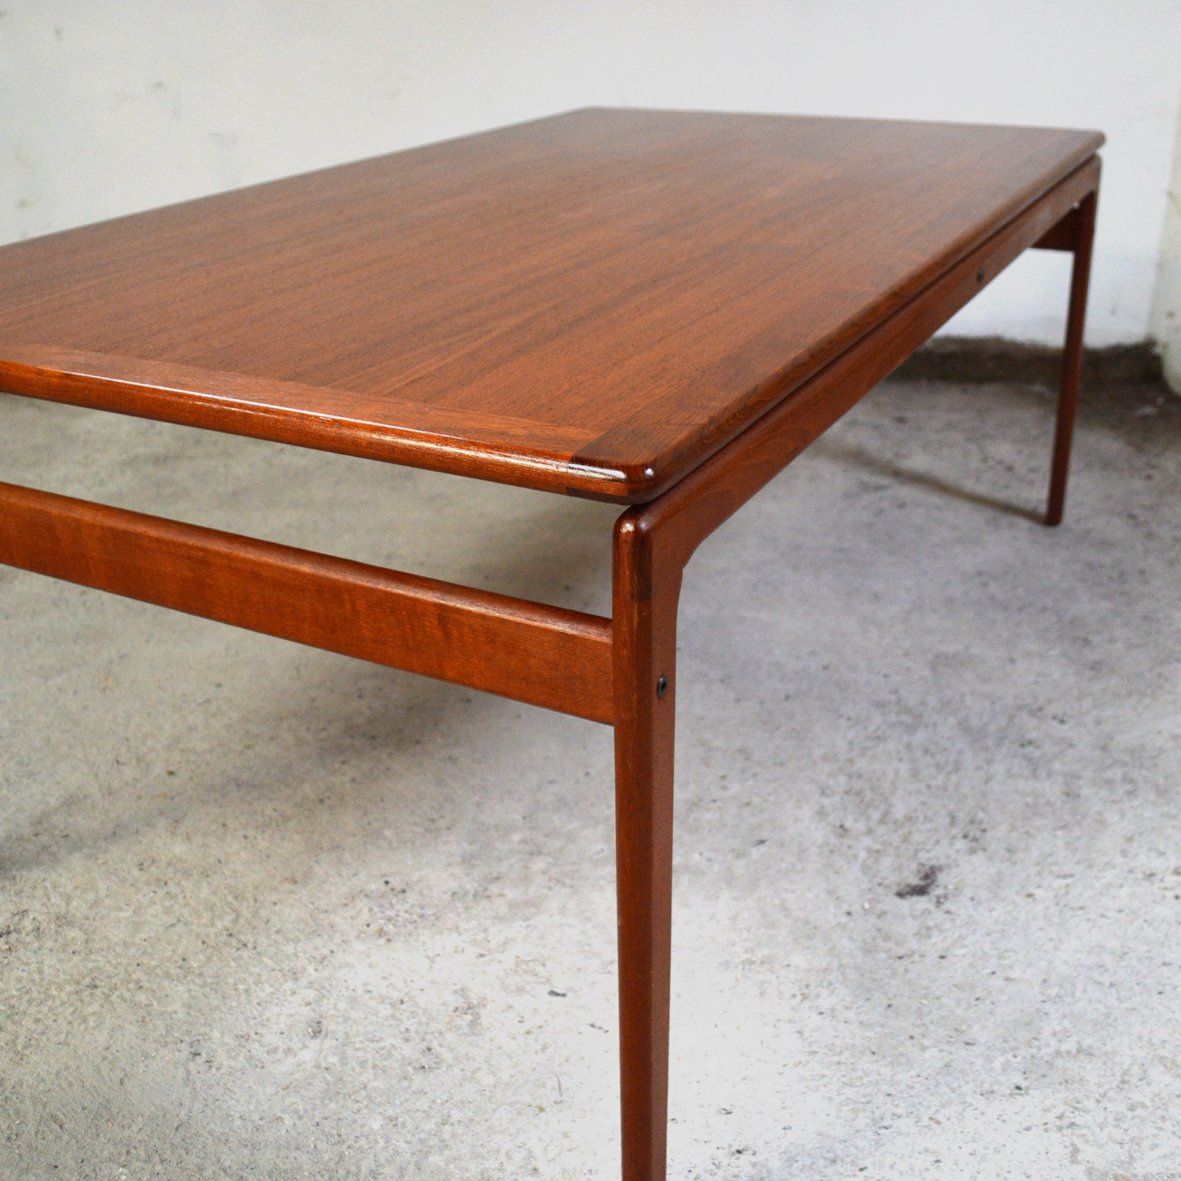 Danish Teak Coffee Table From Trioh, 1970s For Sale At Pamono